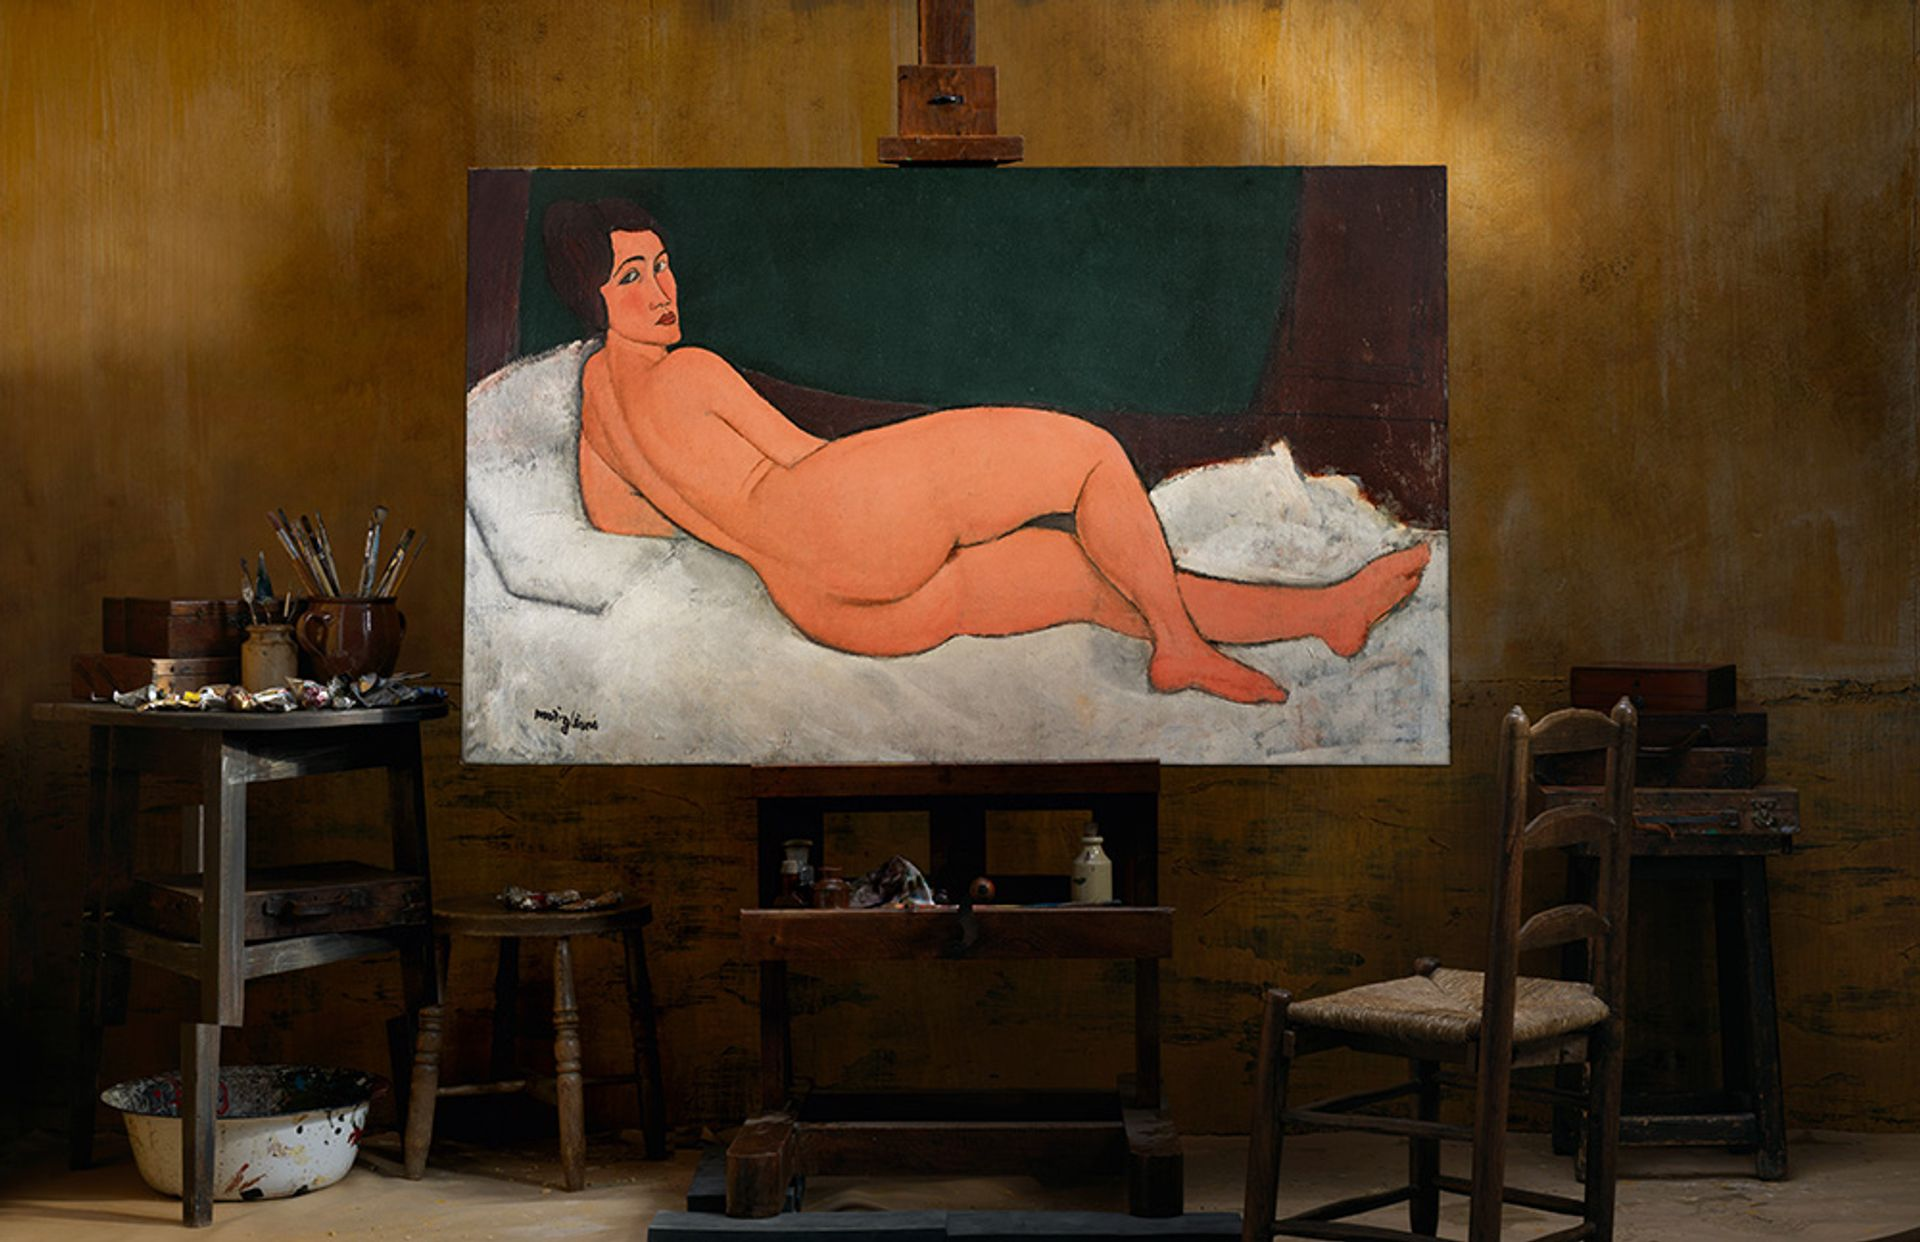 Nu couché (sur le côté gauche) (1917), one of Amedeo Modigliani's famous nudes, which will be offered Sotheby's New York on 14 May with an estimate in excess of $150m Courtesy of Sotheby's